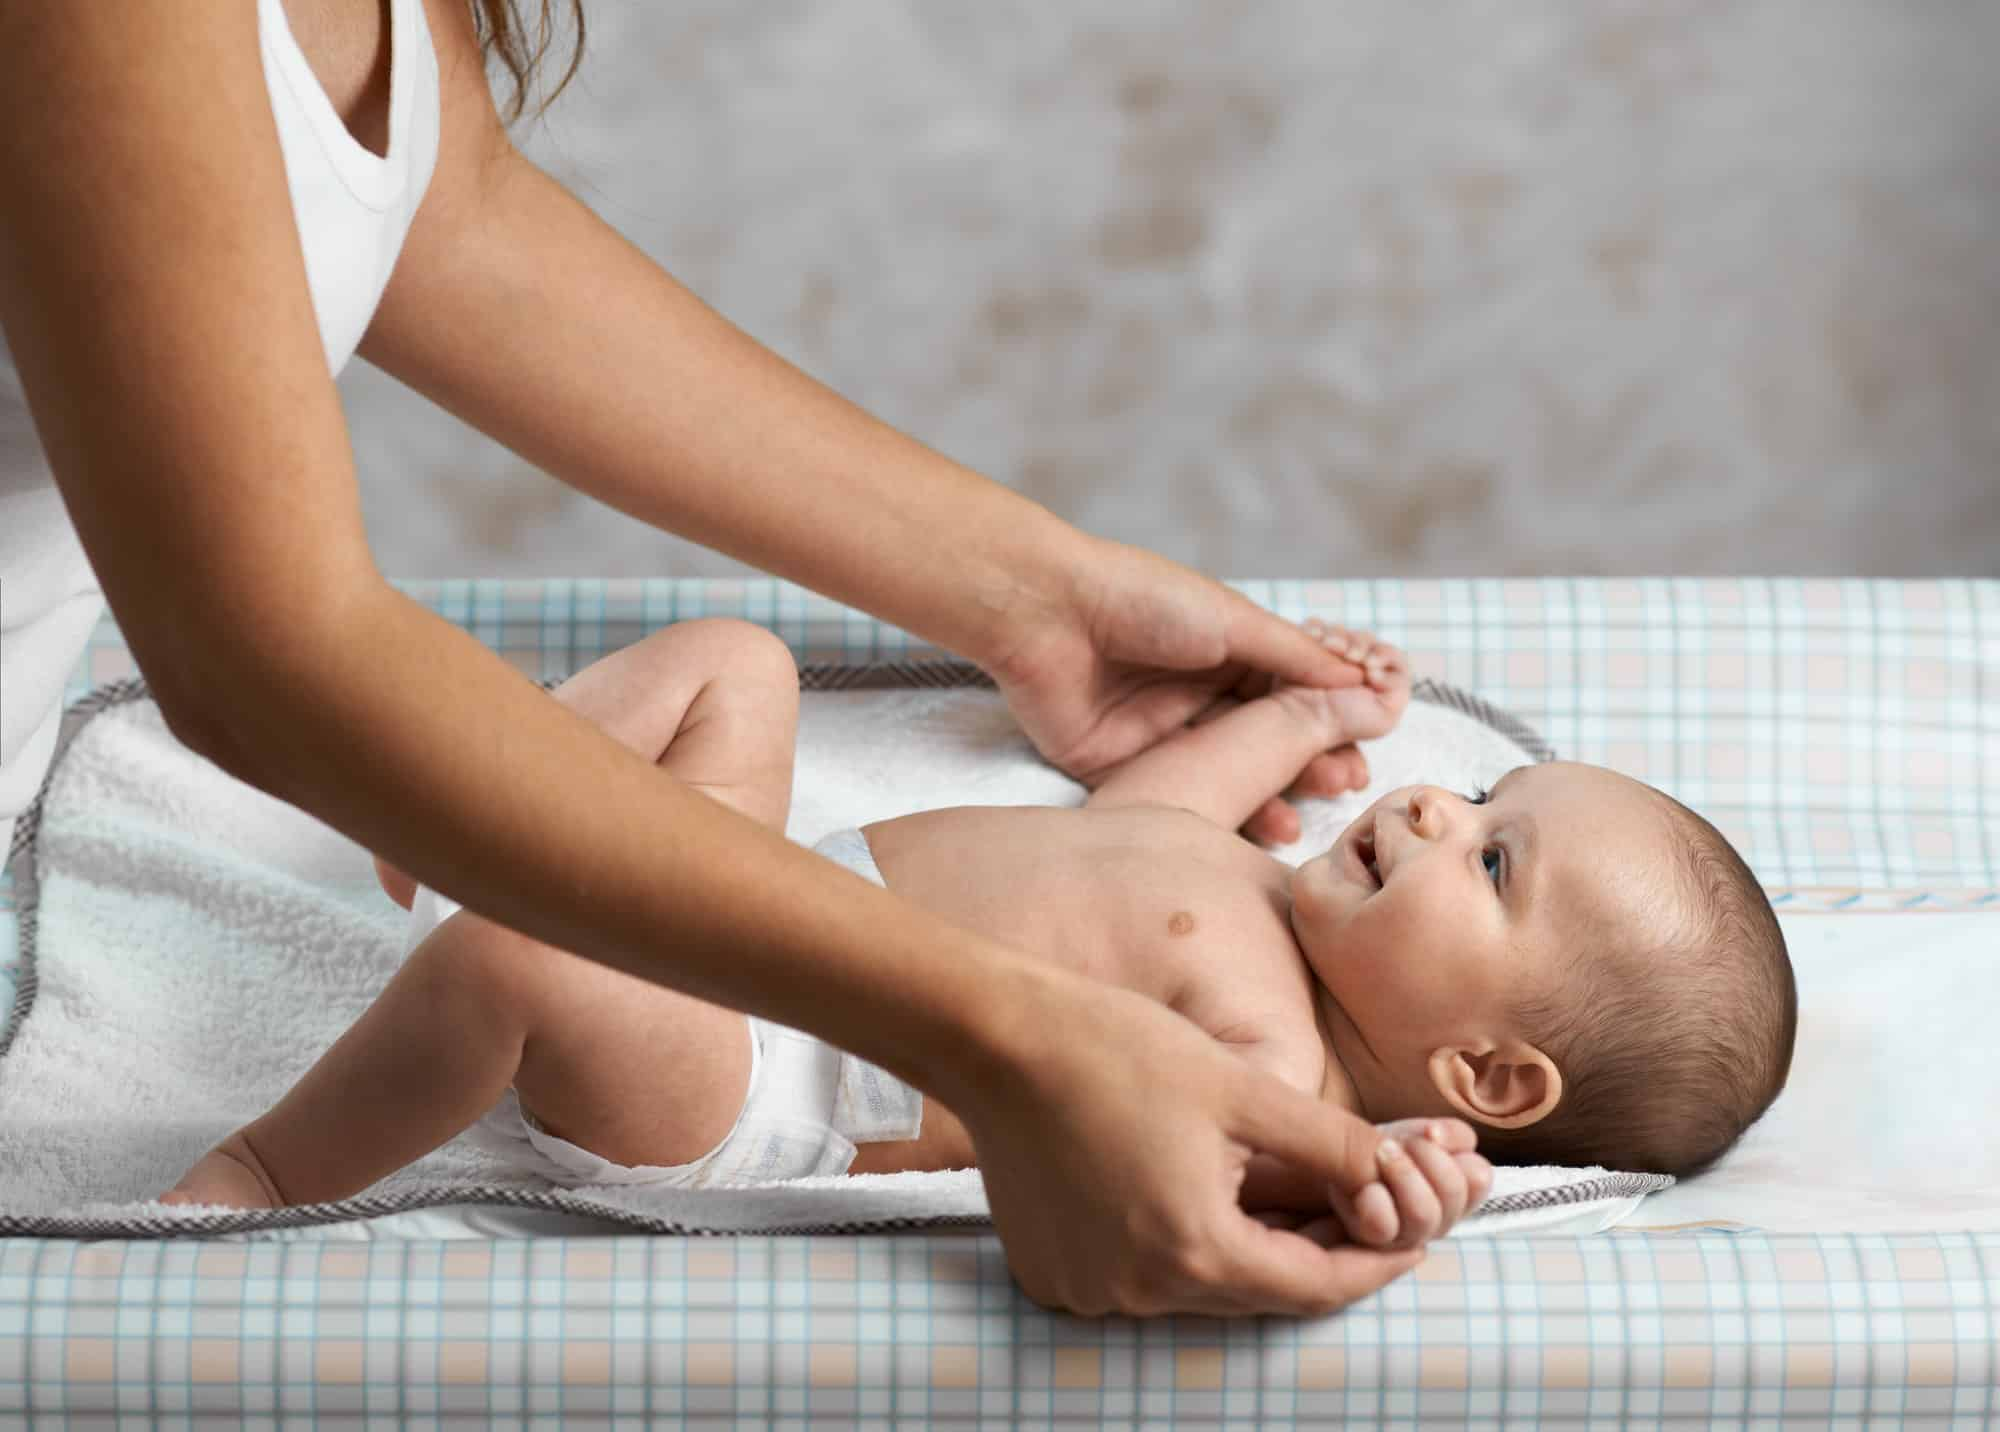 babies getting regular massages have tight skin